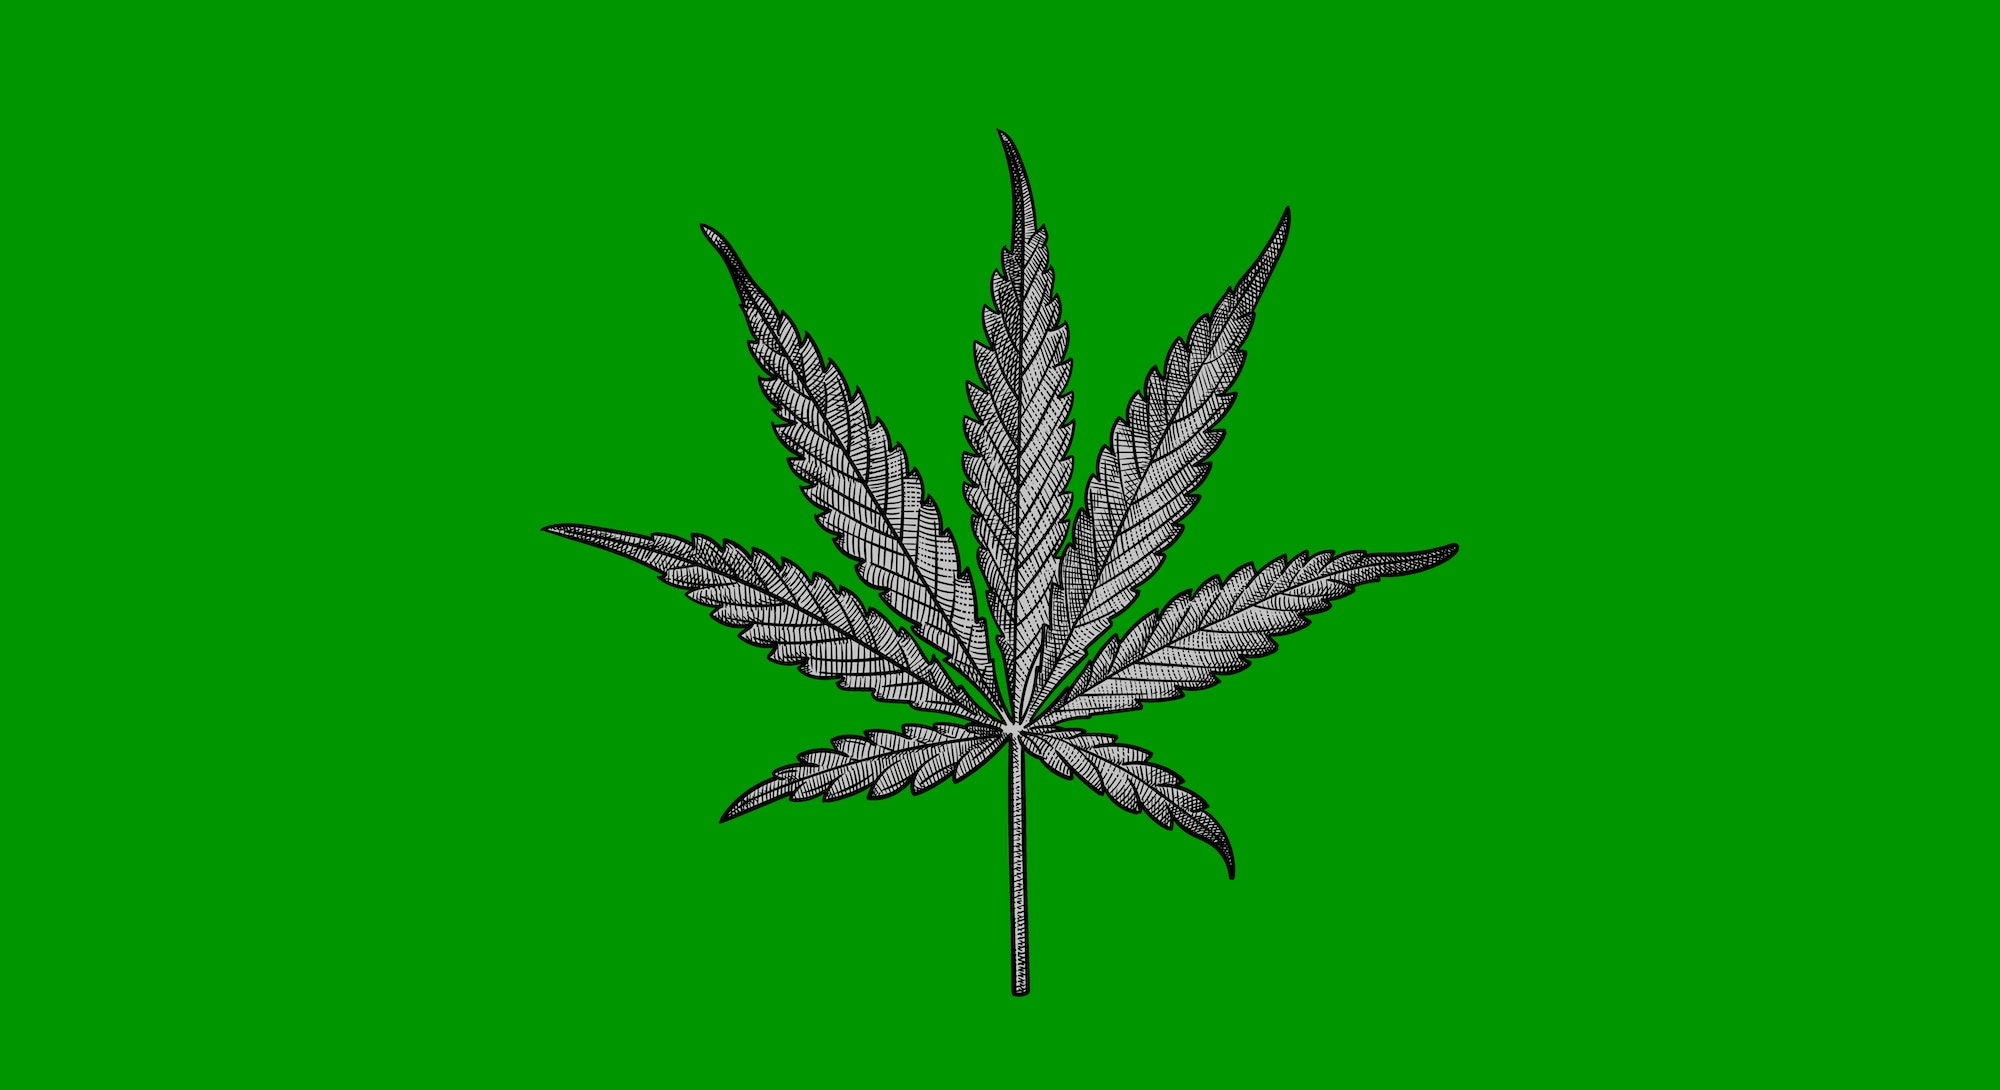 sketch of a marijuana leaf on a green backgroun